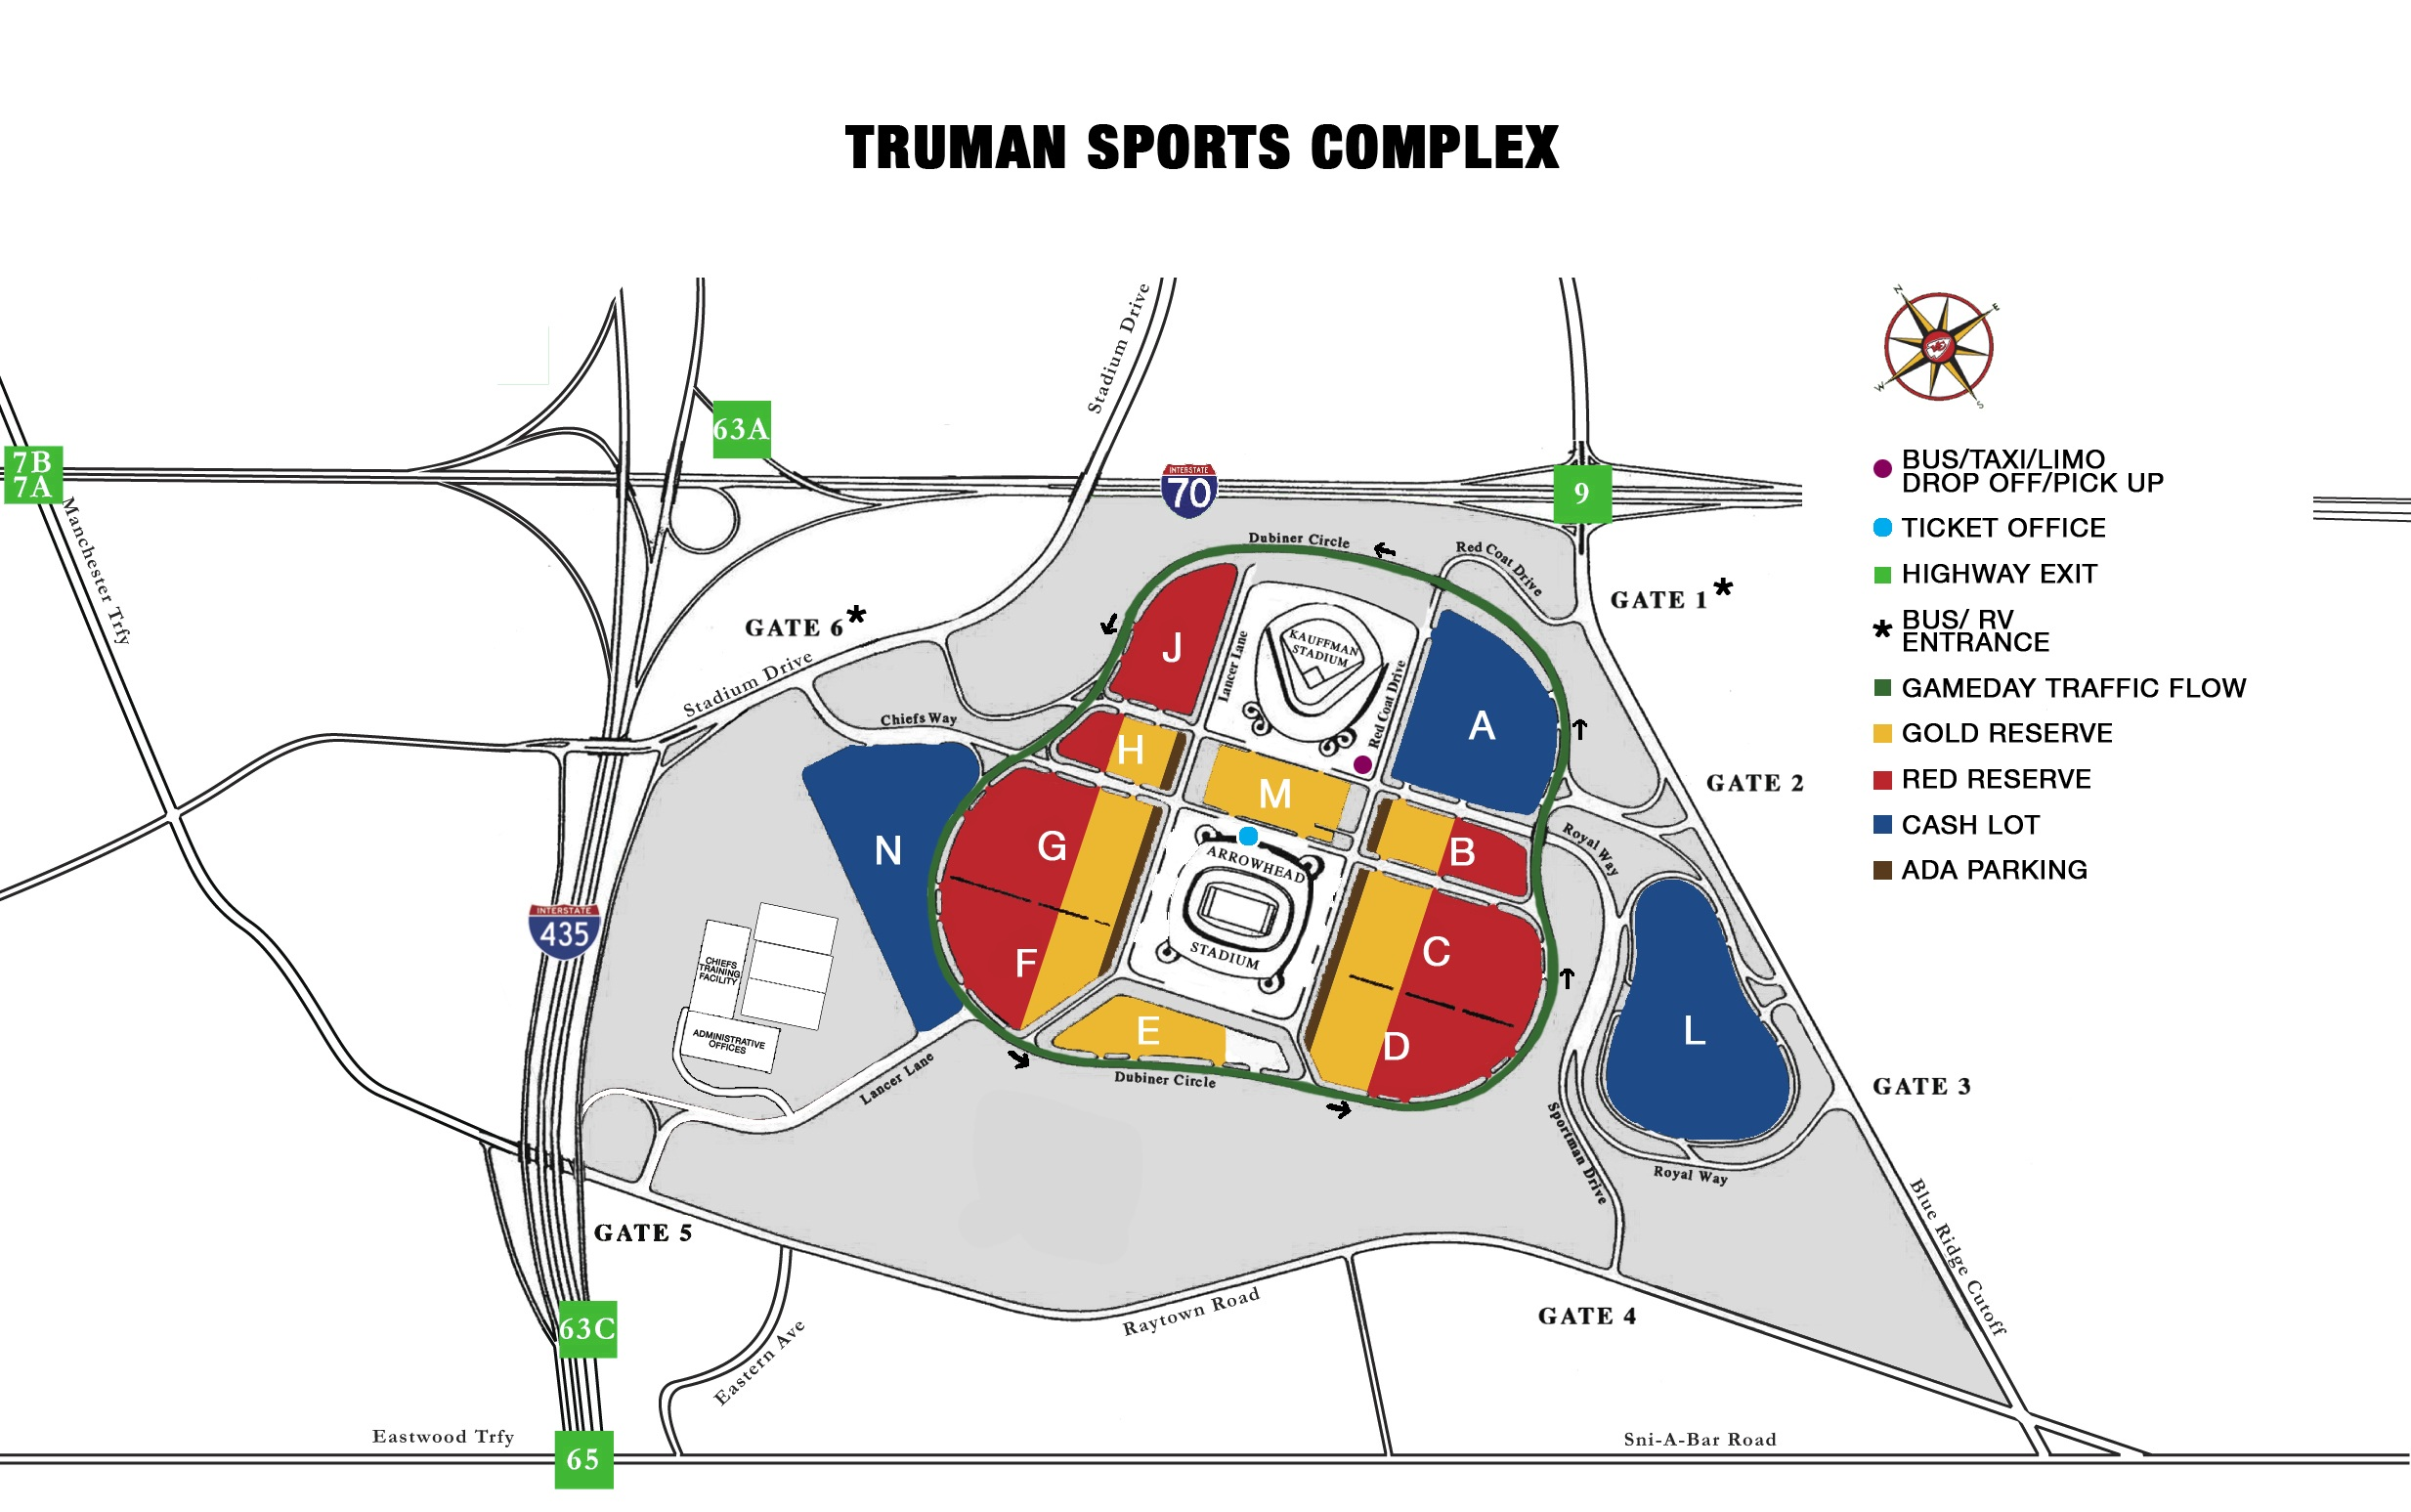 Kauffman Stadium Parking Map Kauffman Stadium, Kansas City MO | Seating Chart View